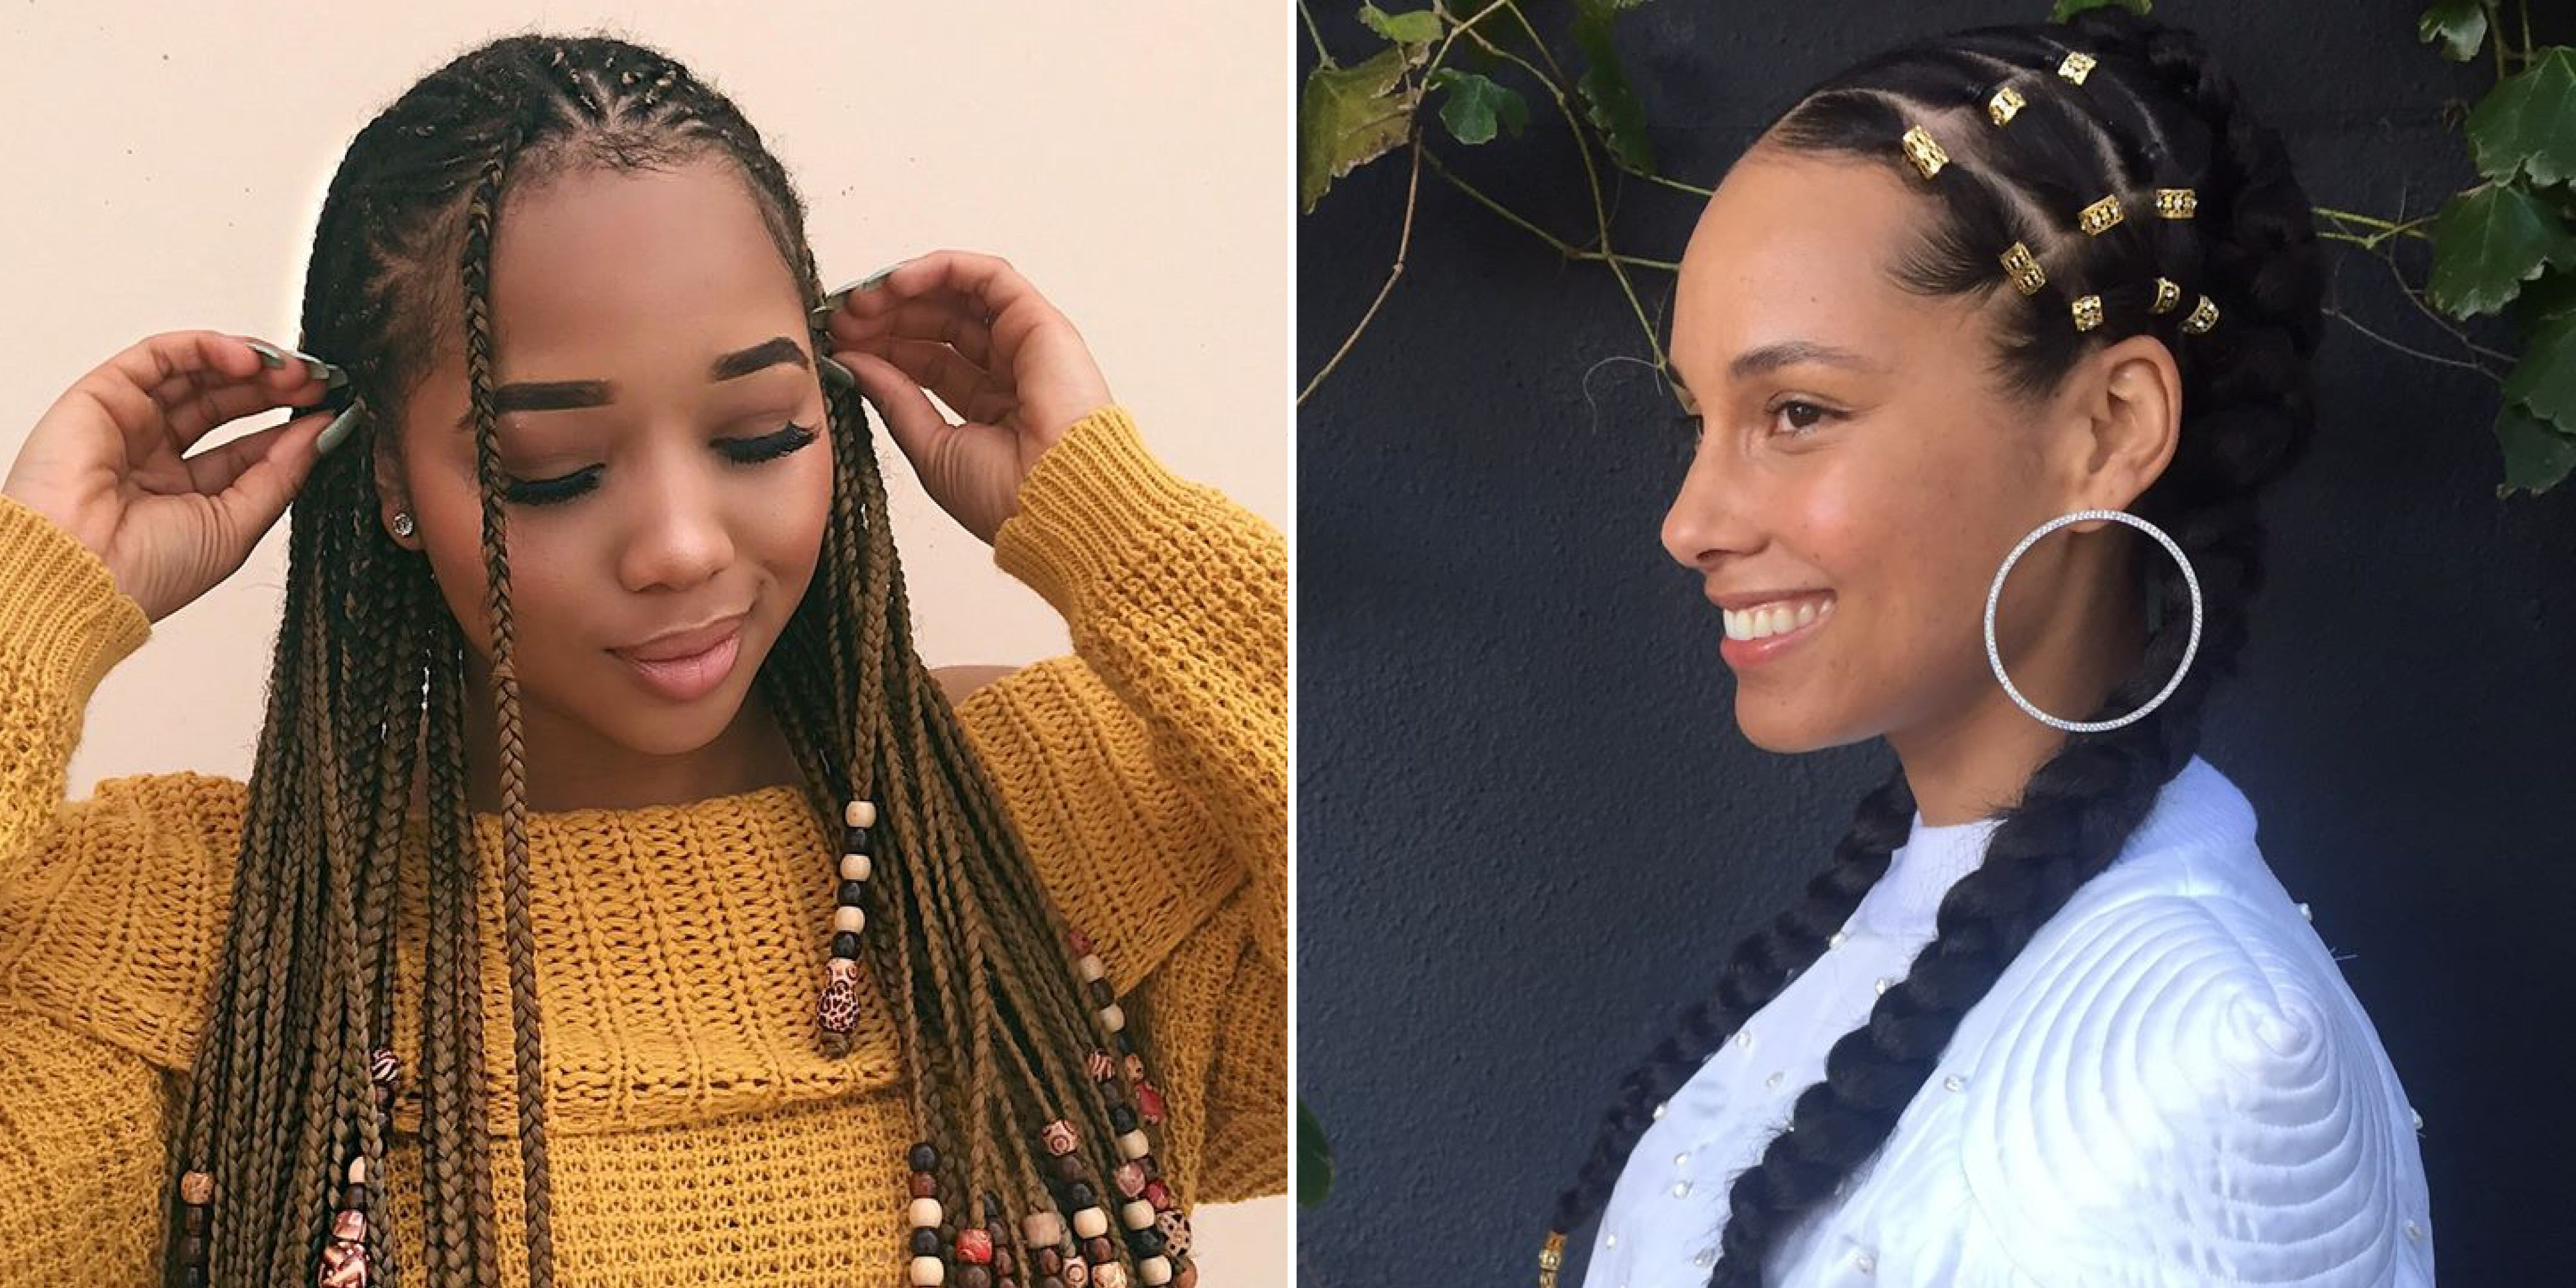 12 Gorgeous Braided Hairstyles With Beads From Instagram With Regard To Most Up To Date Box Braids And Beads Hairstyles (Gallery 11 of 20)